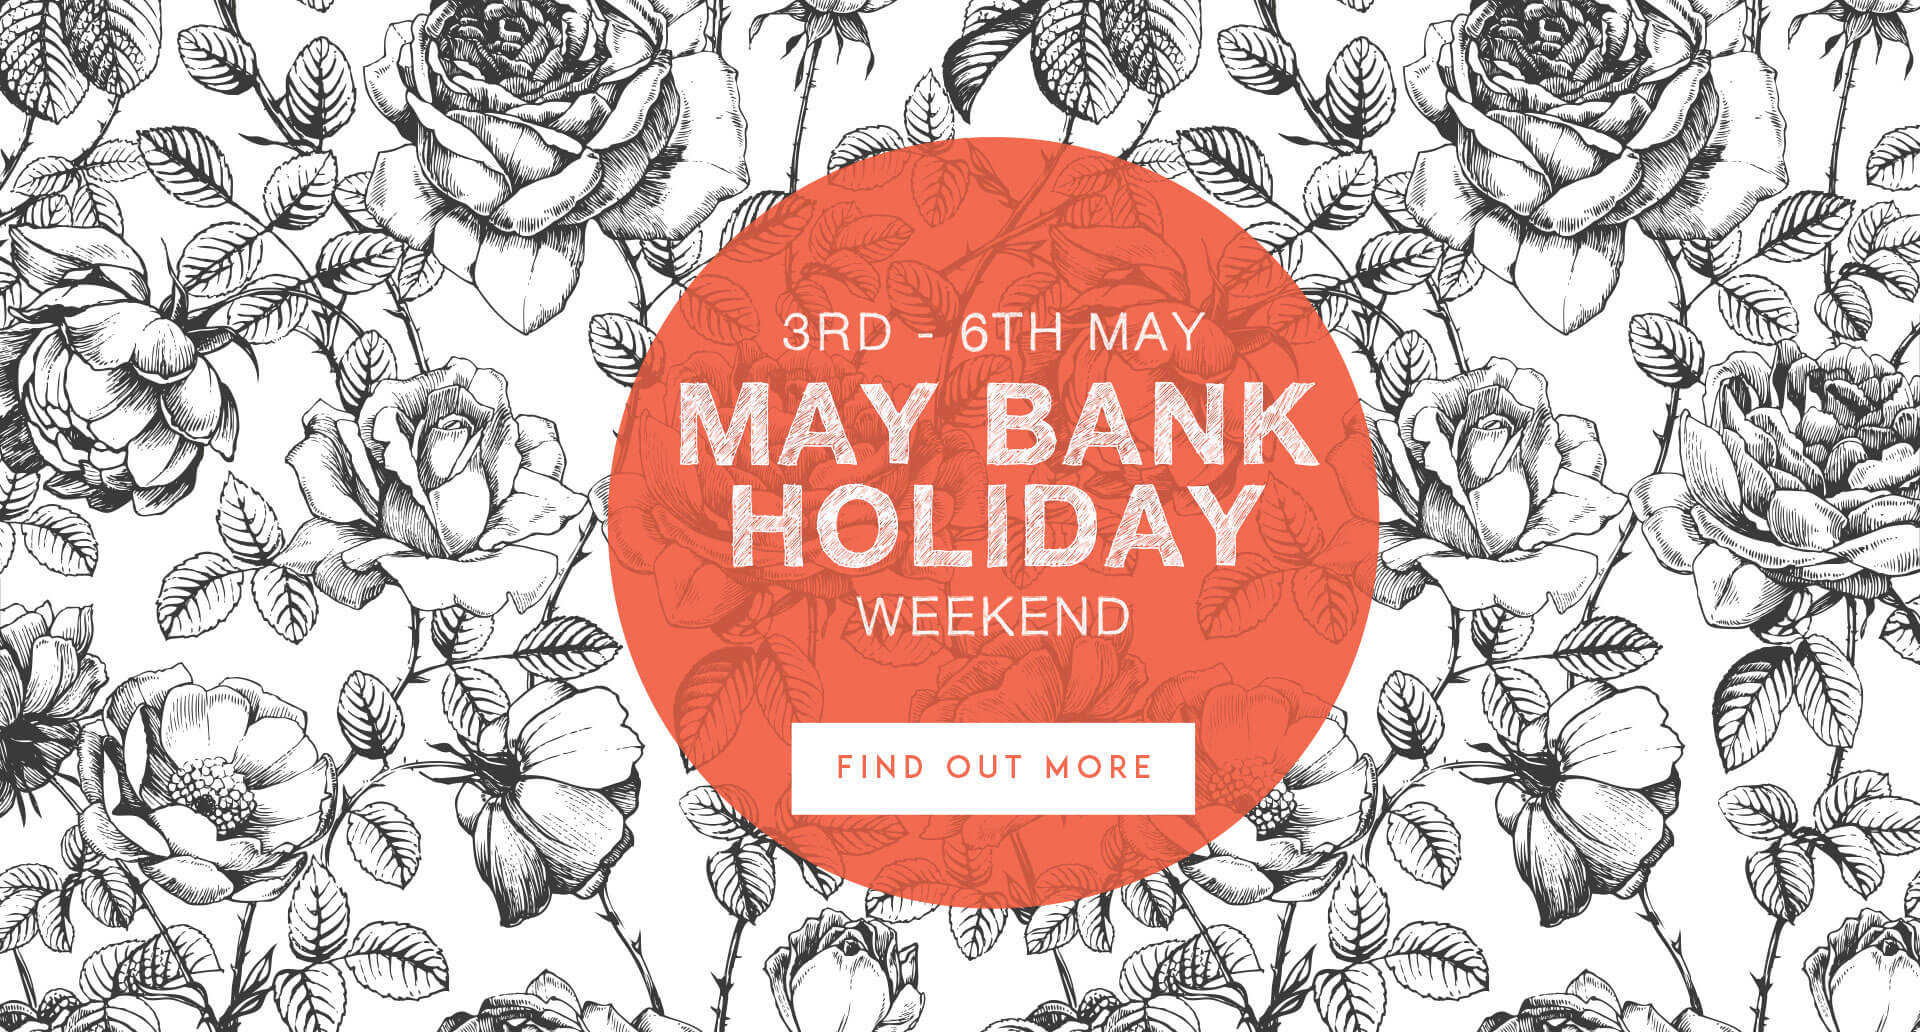 May Bank Holiday at The Clifton